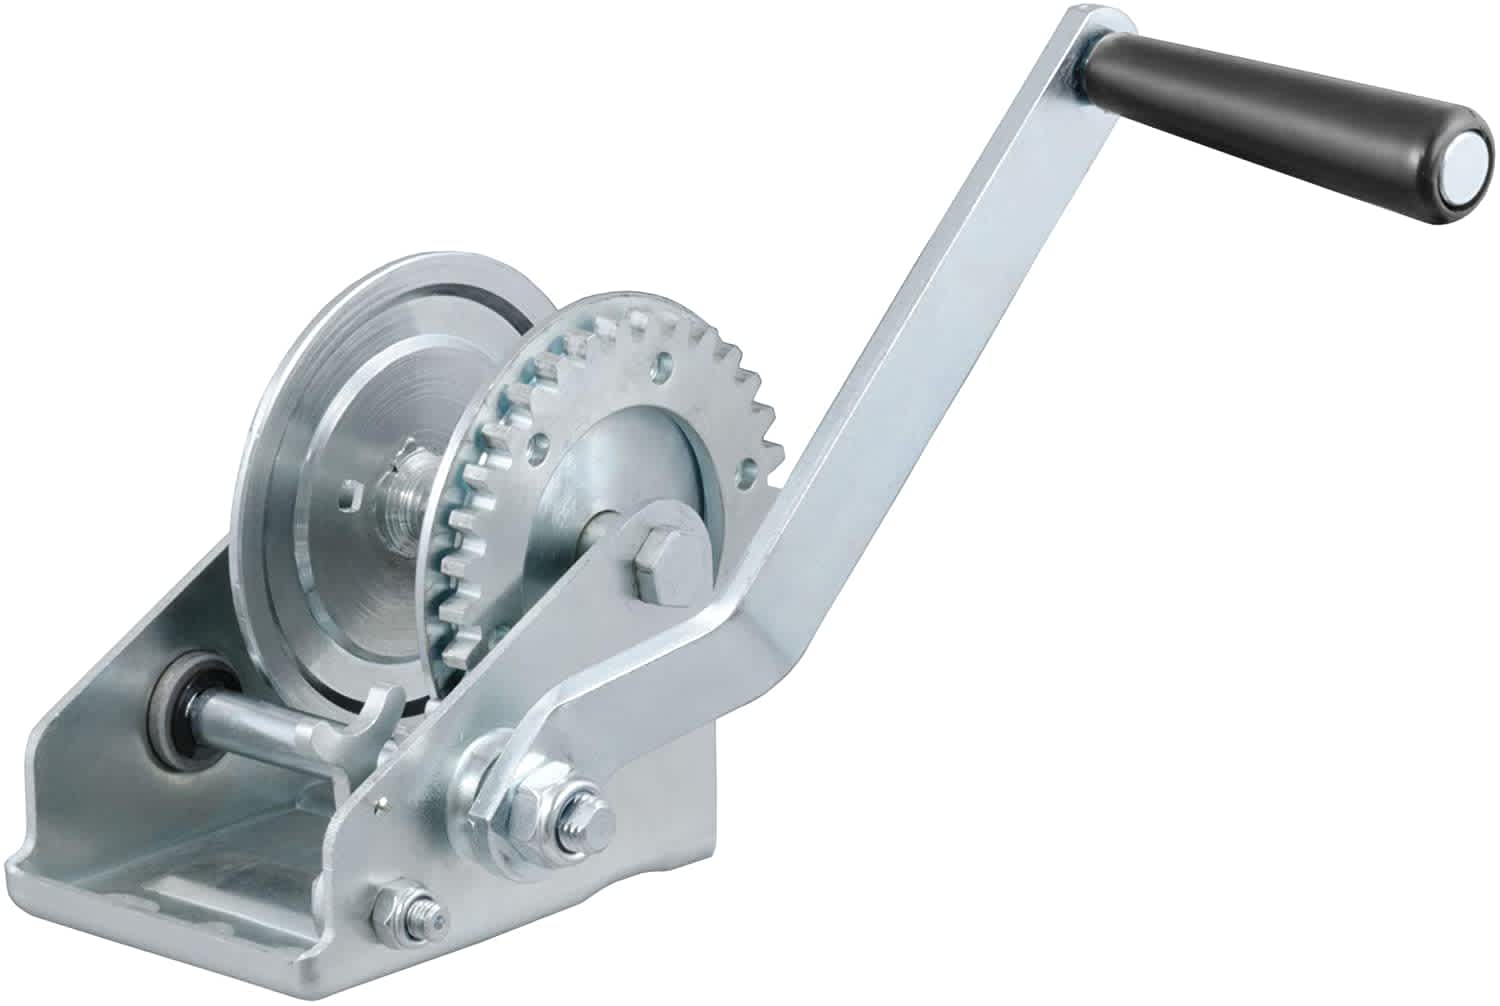 CURT Manufacturing 900-lb. Capacity Hand Crank Winch